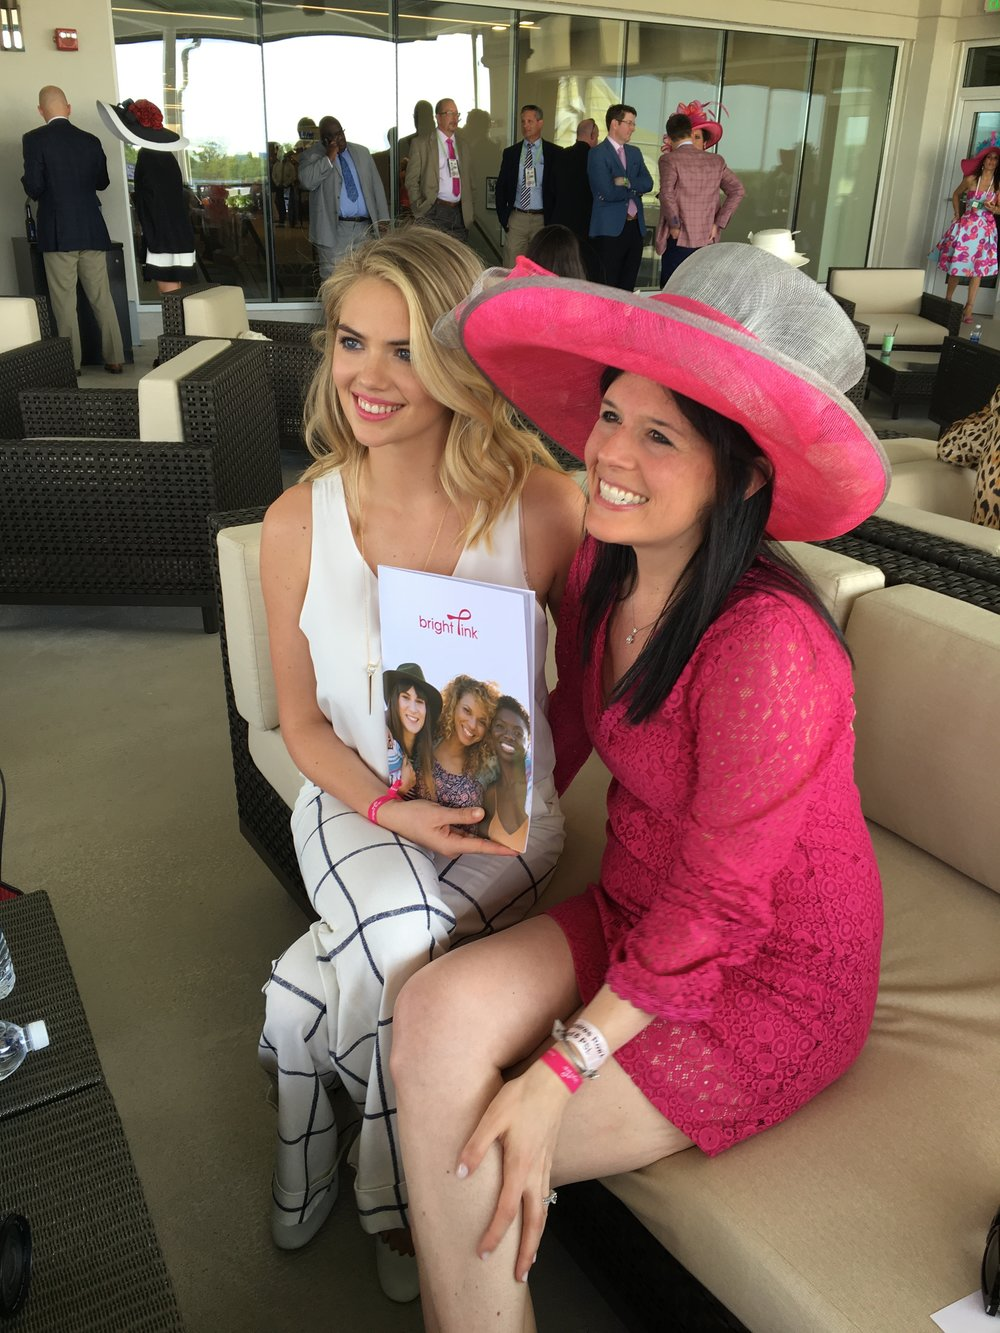 Kate Upton supporting Bright Pink at the Kentucky Oaks